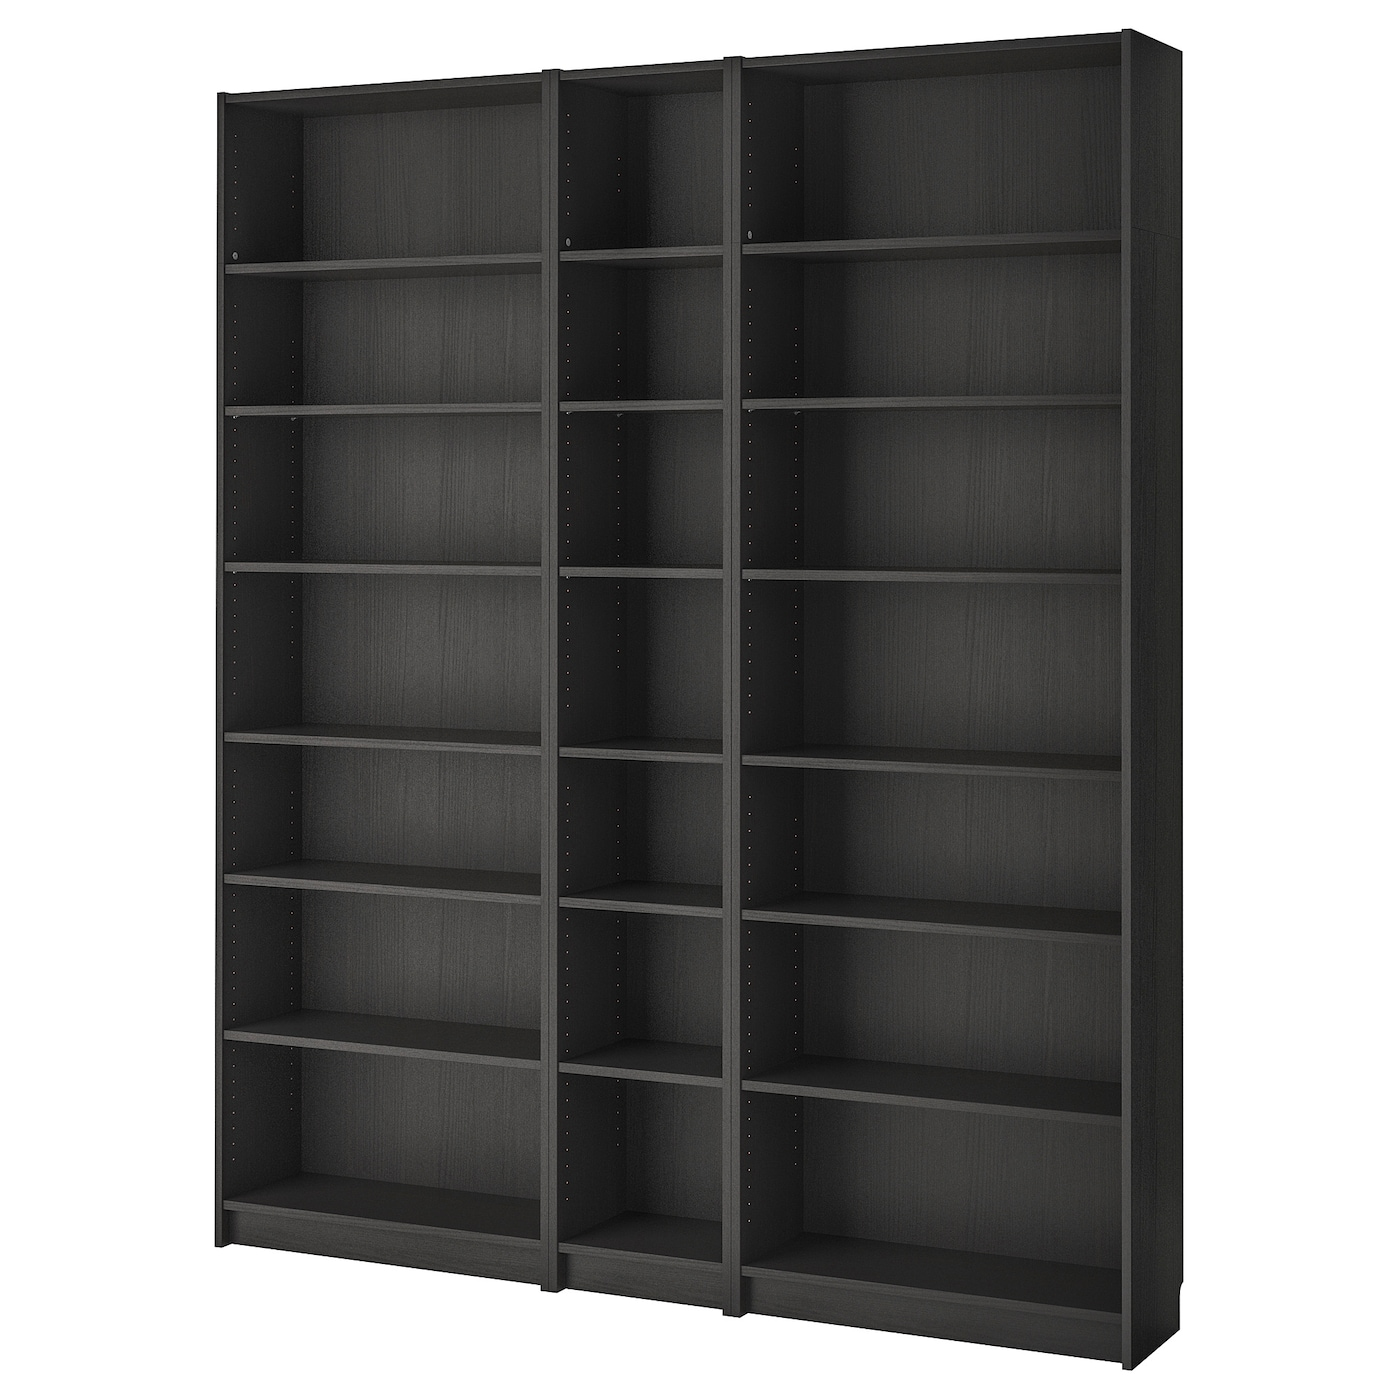 IKEA BILLY bookcase Adjustable shelves, so you can customise your storage as needed.